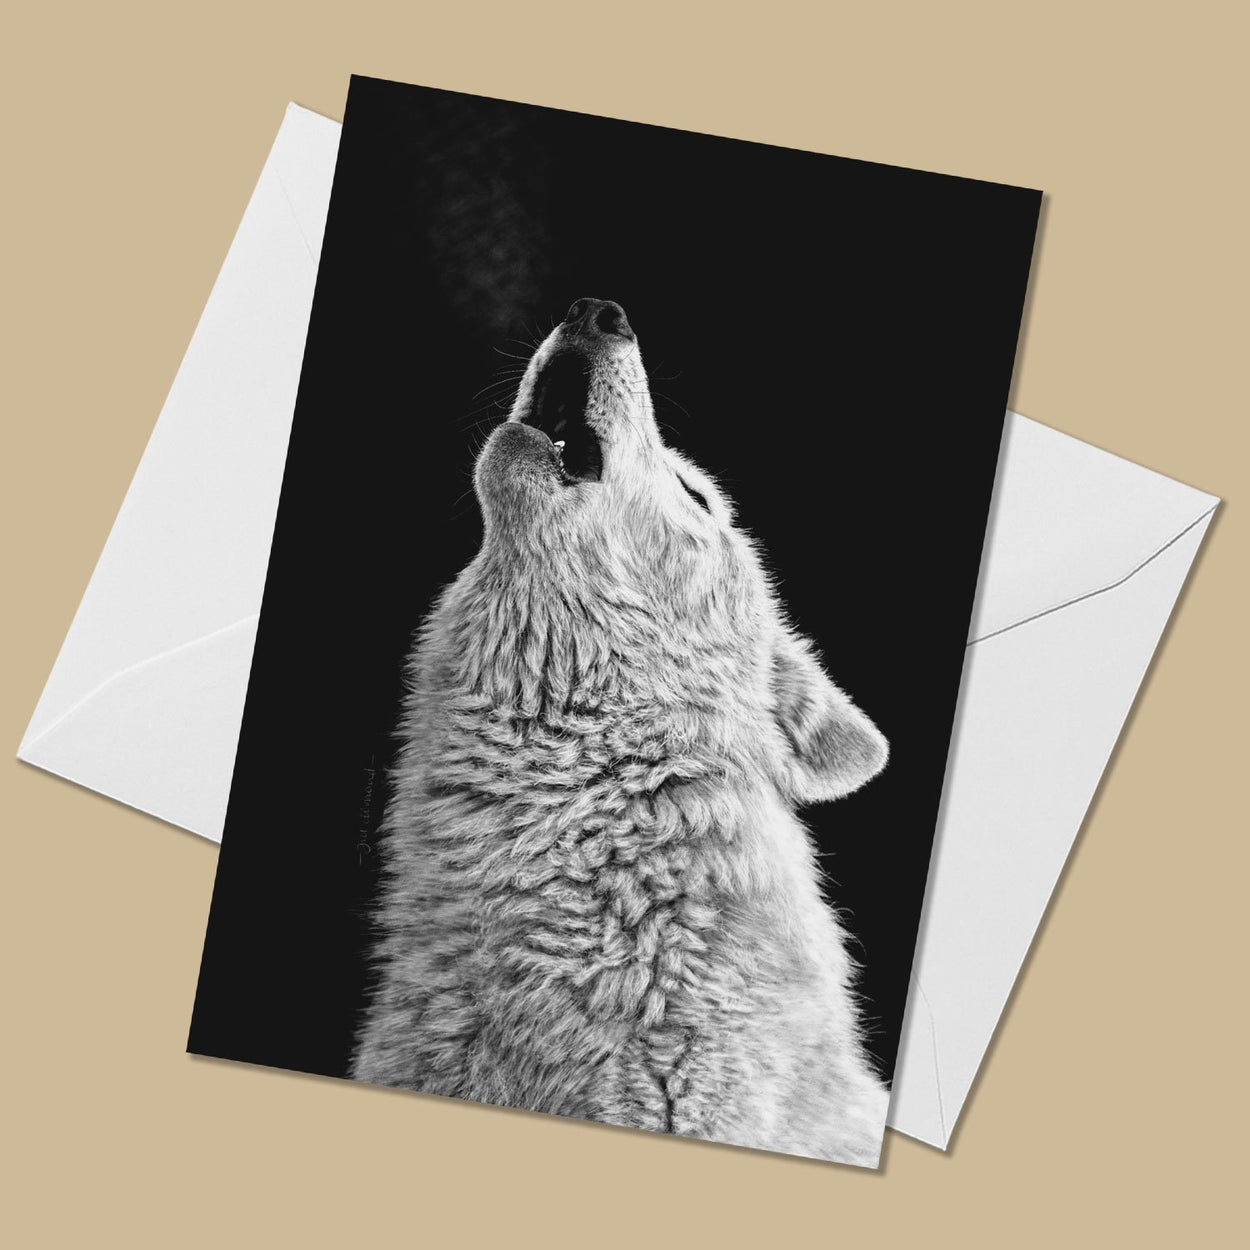 Howling Wolf Greeting Card - The Thriving Wild